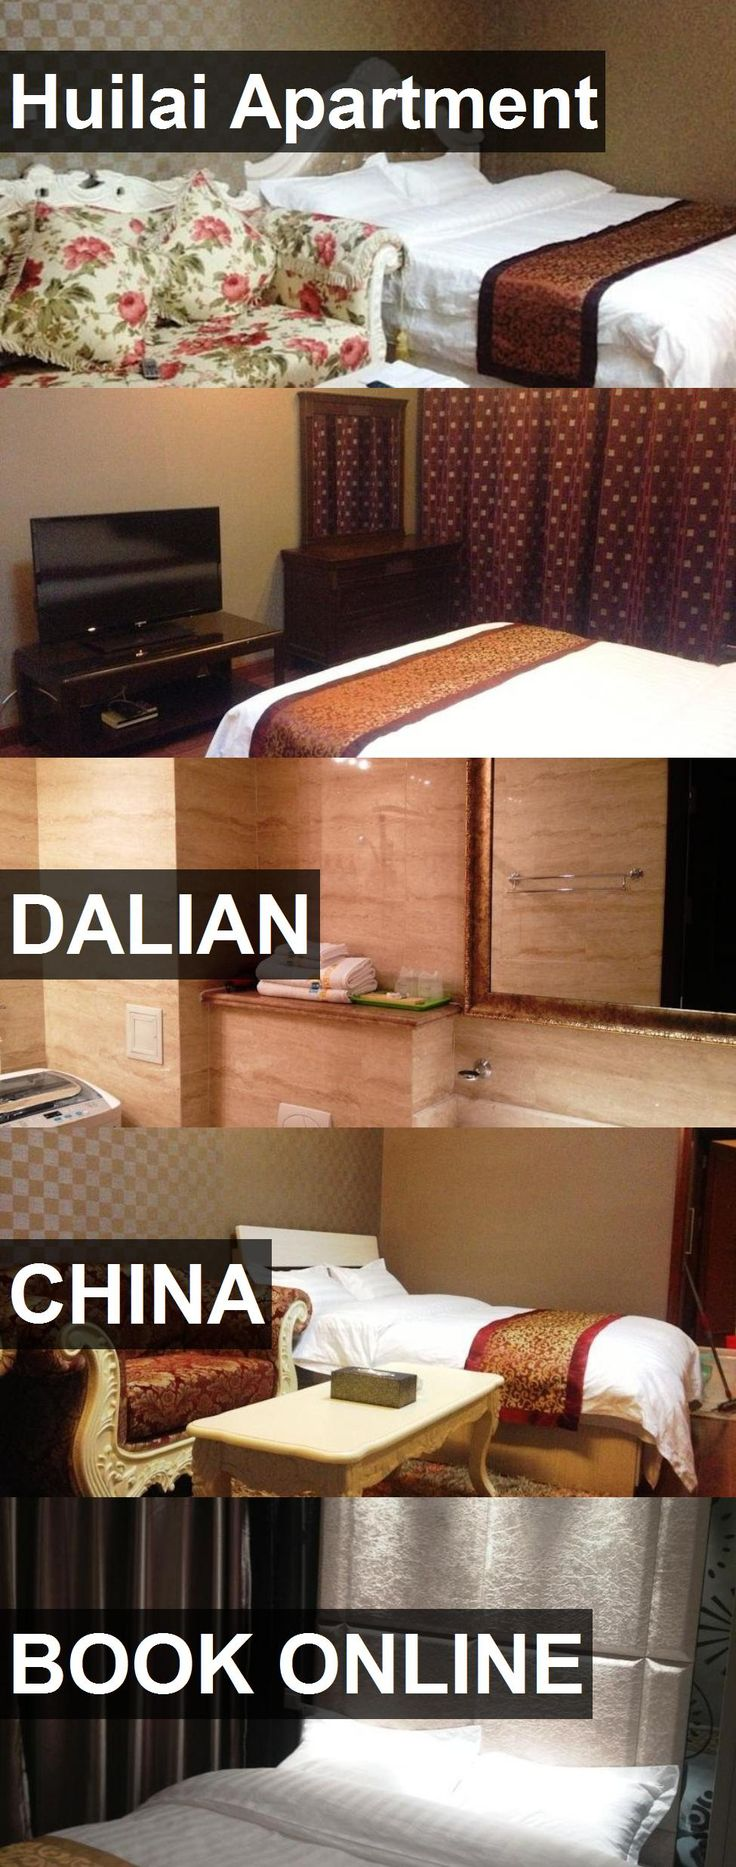 Hotel Huilai Apartment in Dalian, China. For more information, photos, reviews and best prices please follow the link. #China #Dalian #HuilaiApartment #hotel #travel #vacation